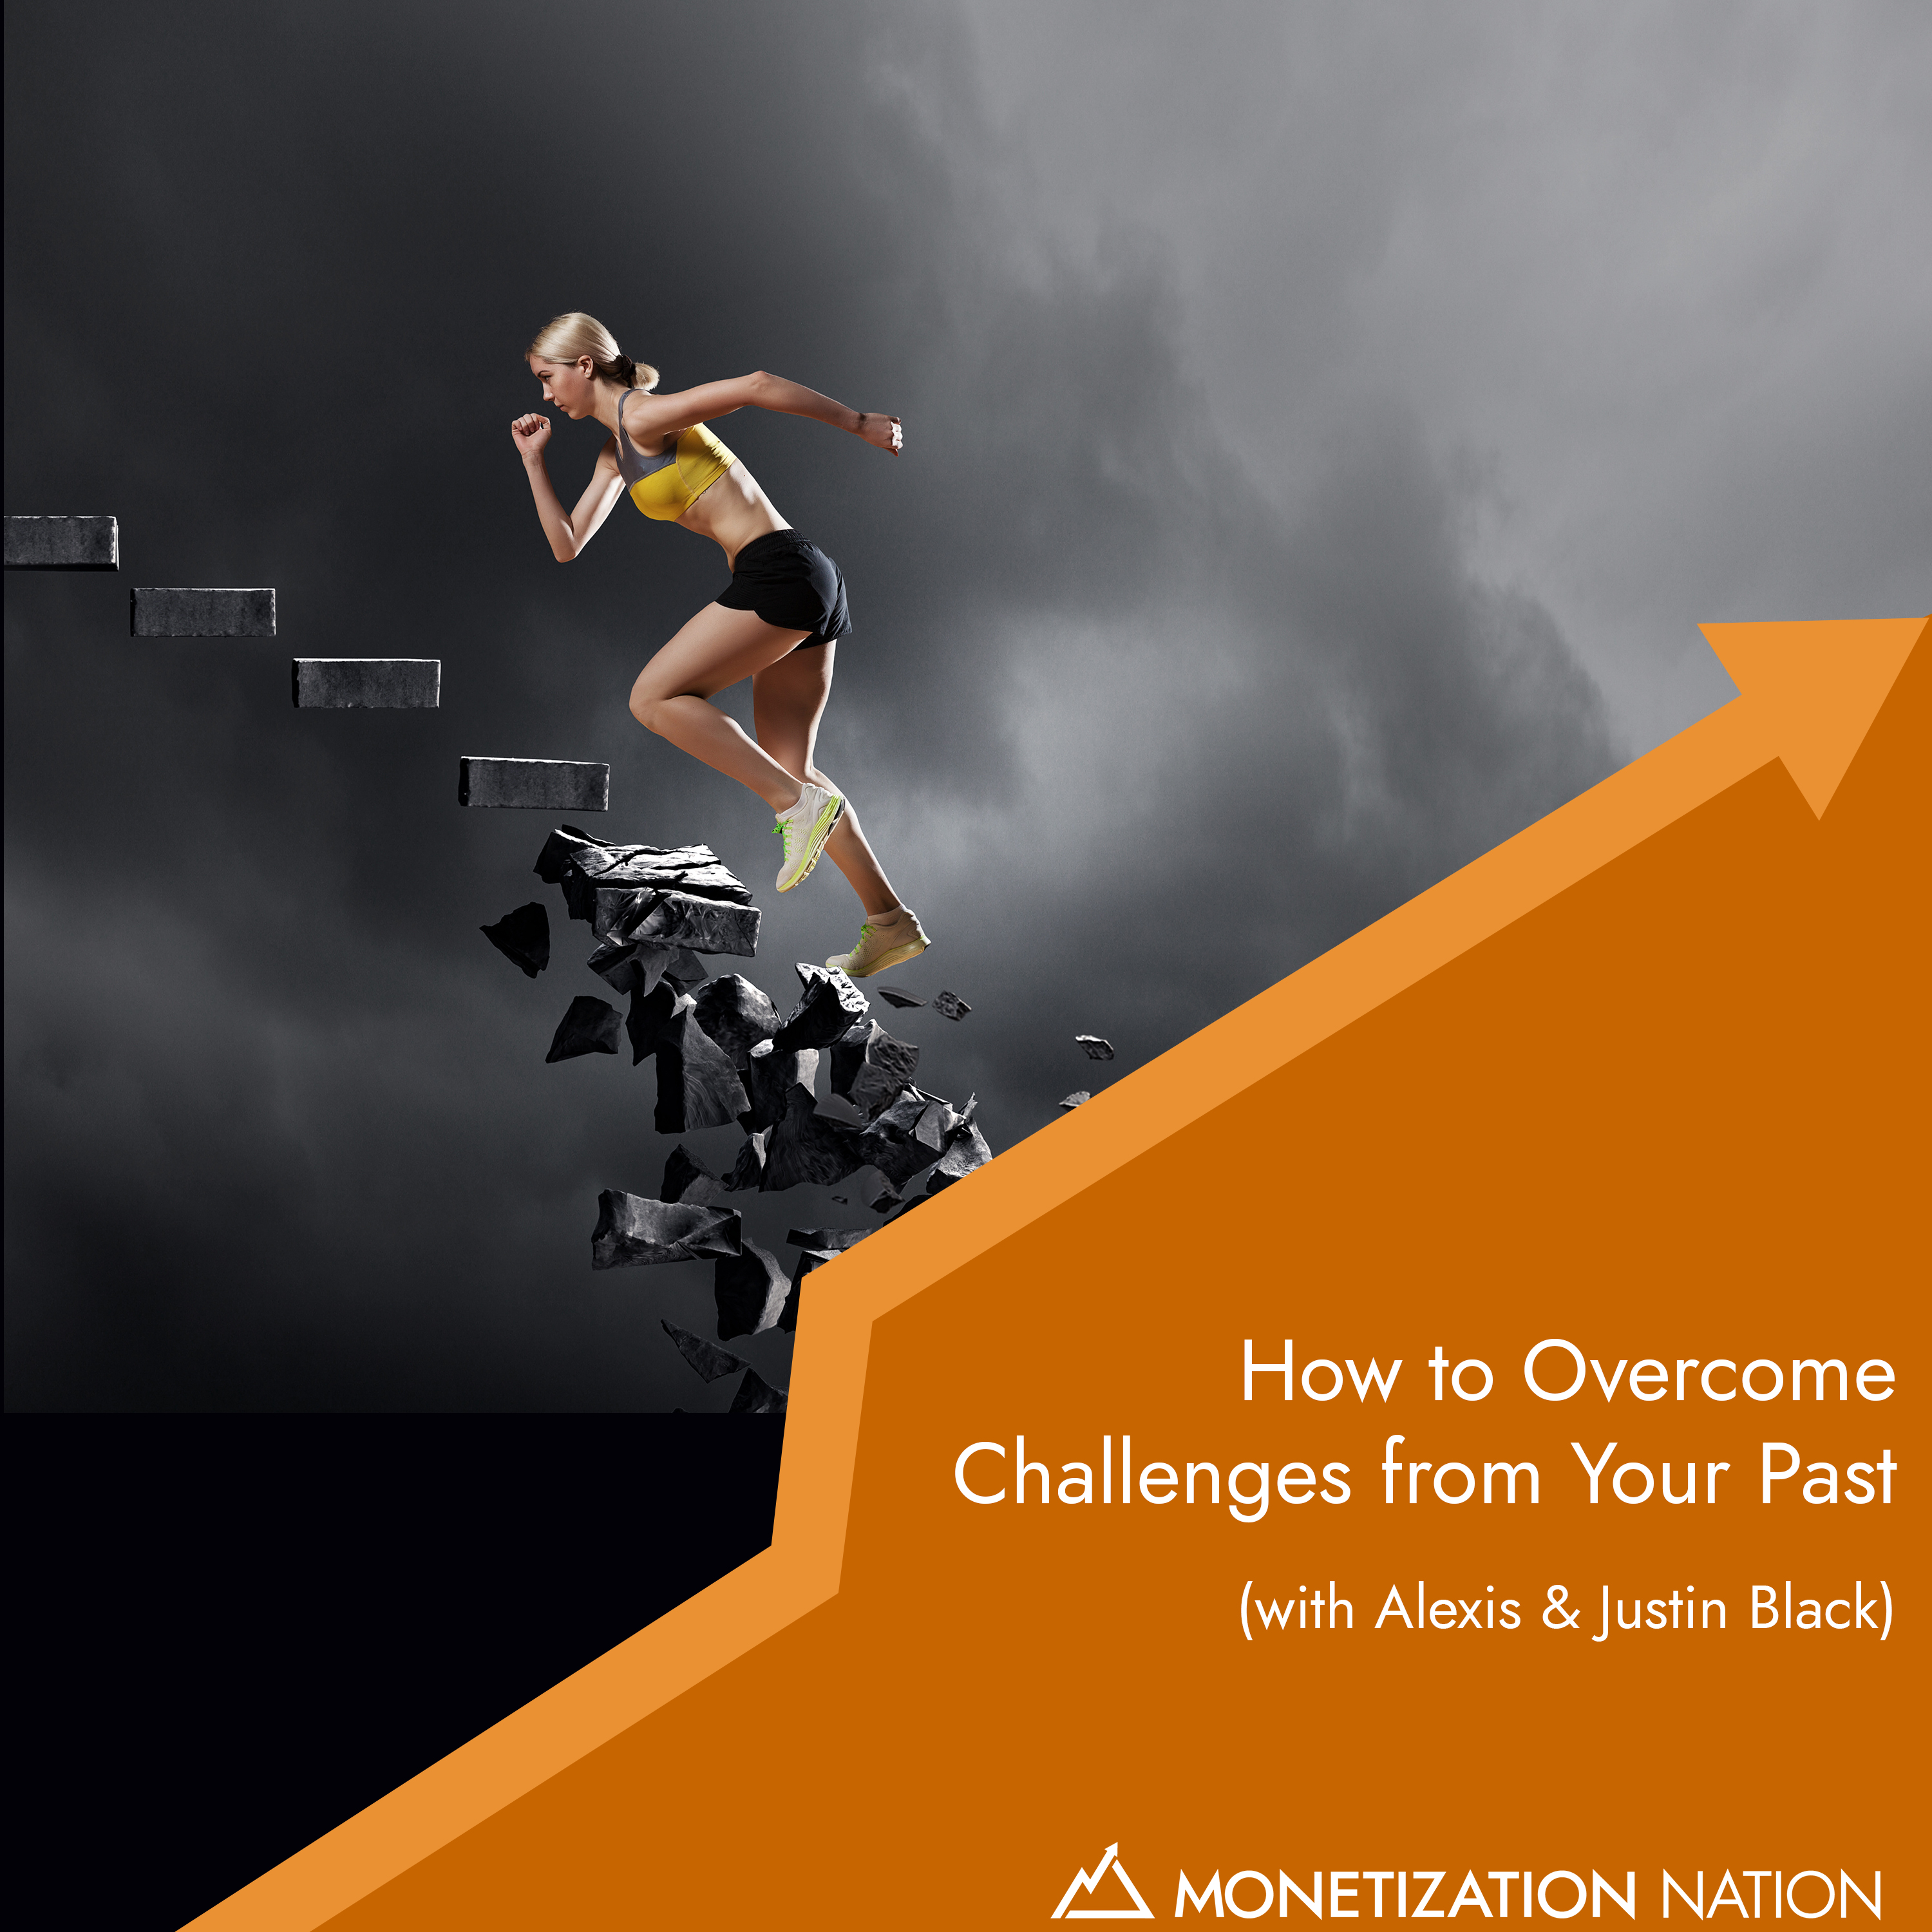 How to Overcome Challenges from Your Past